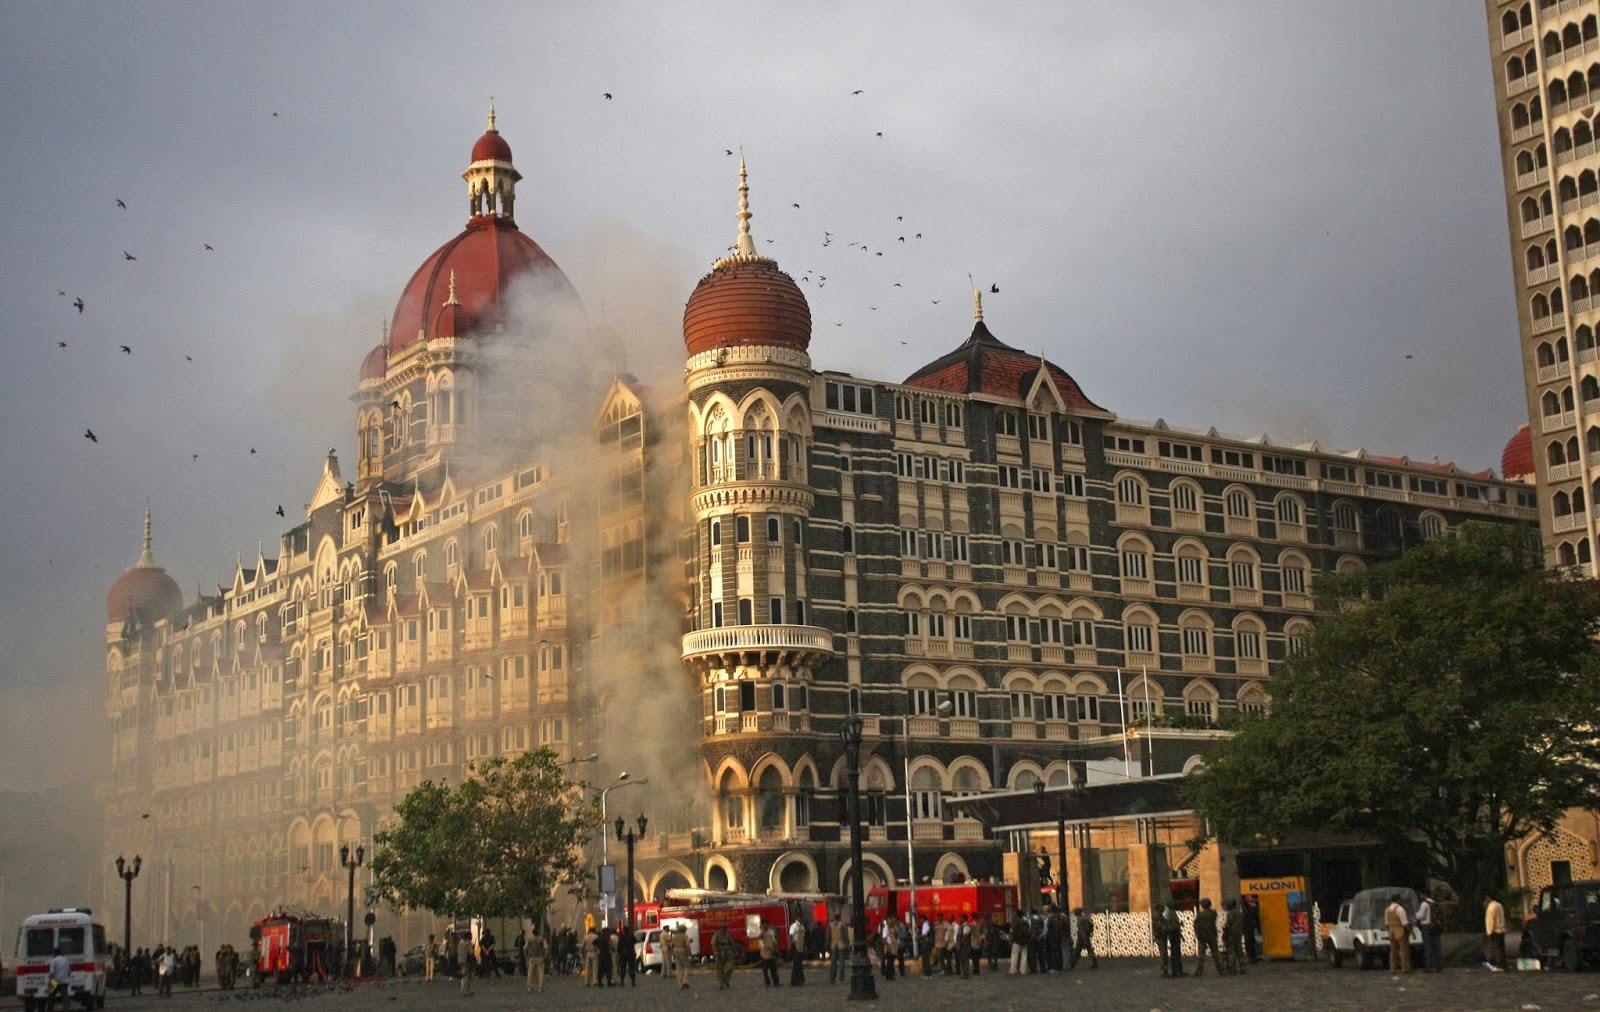 mumbai wallpapers: hd wallpapers available for free download